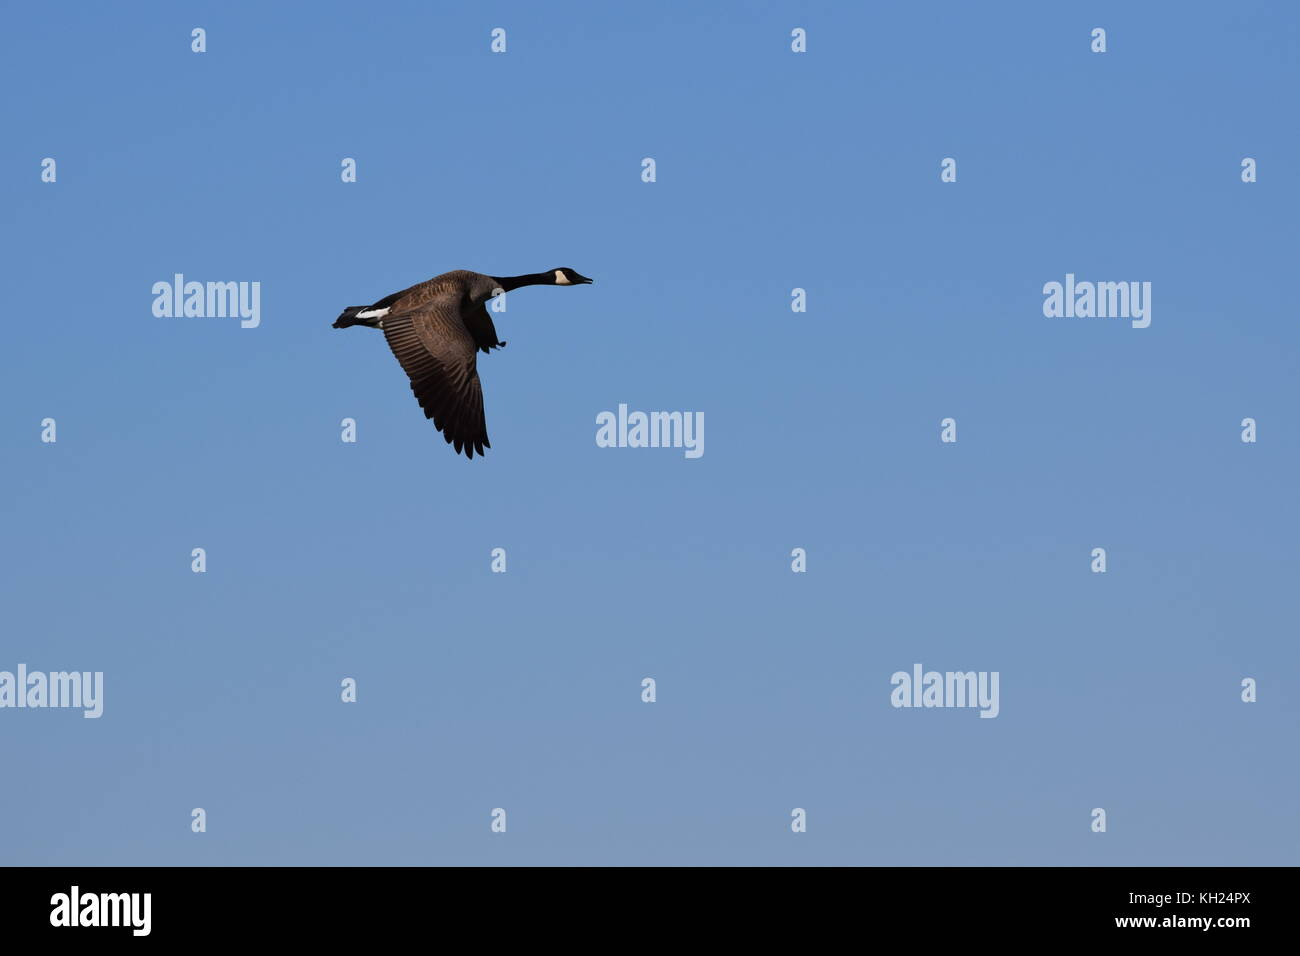 Canadian Goose in flight during fall migration in North America. - Stock Image